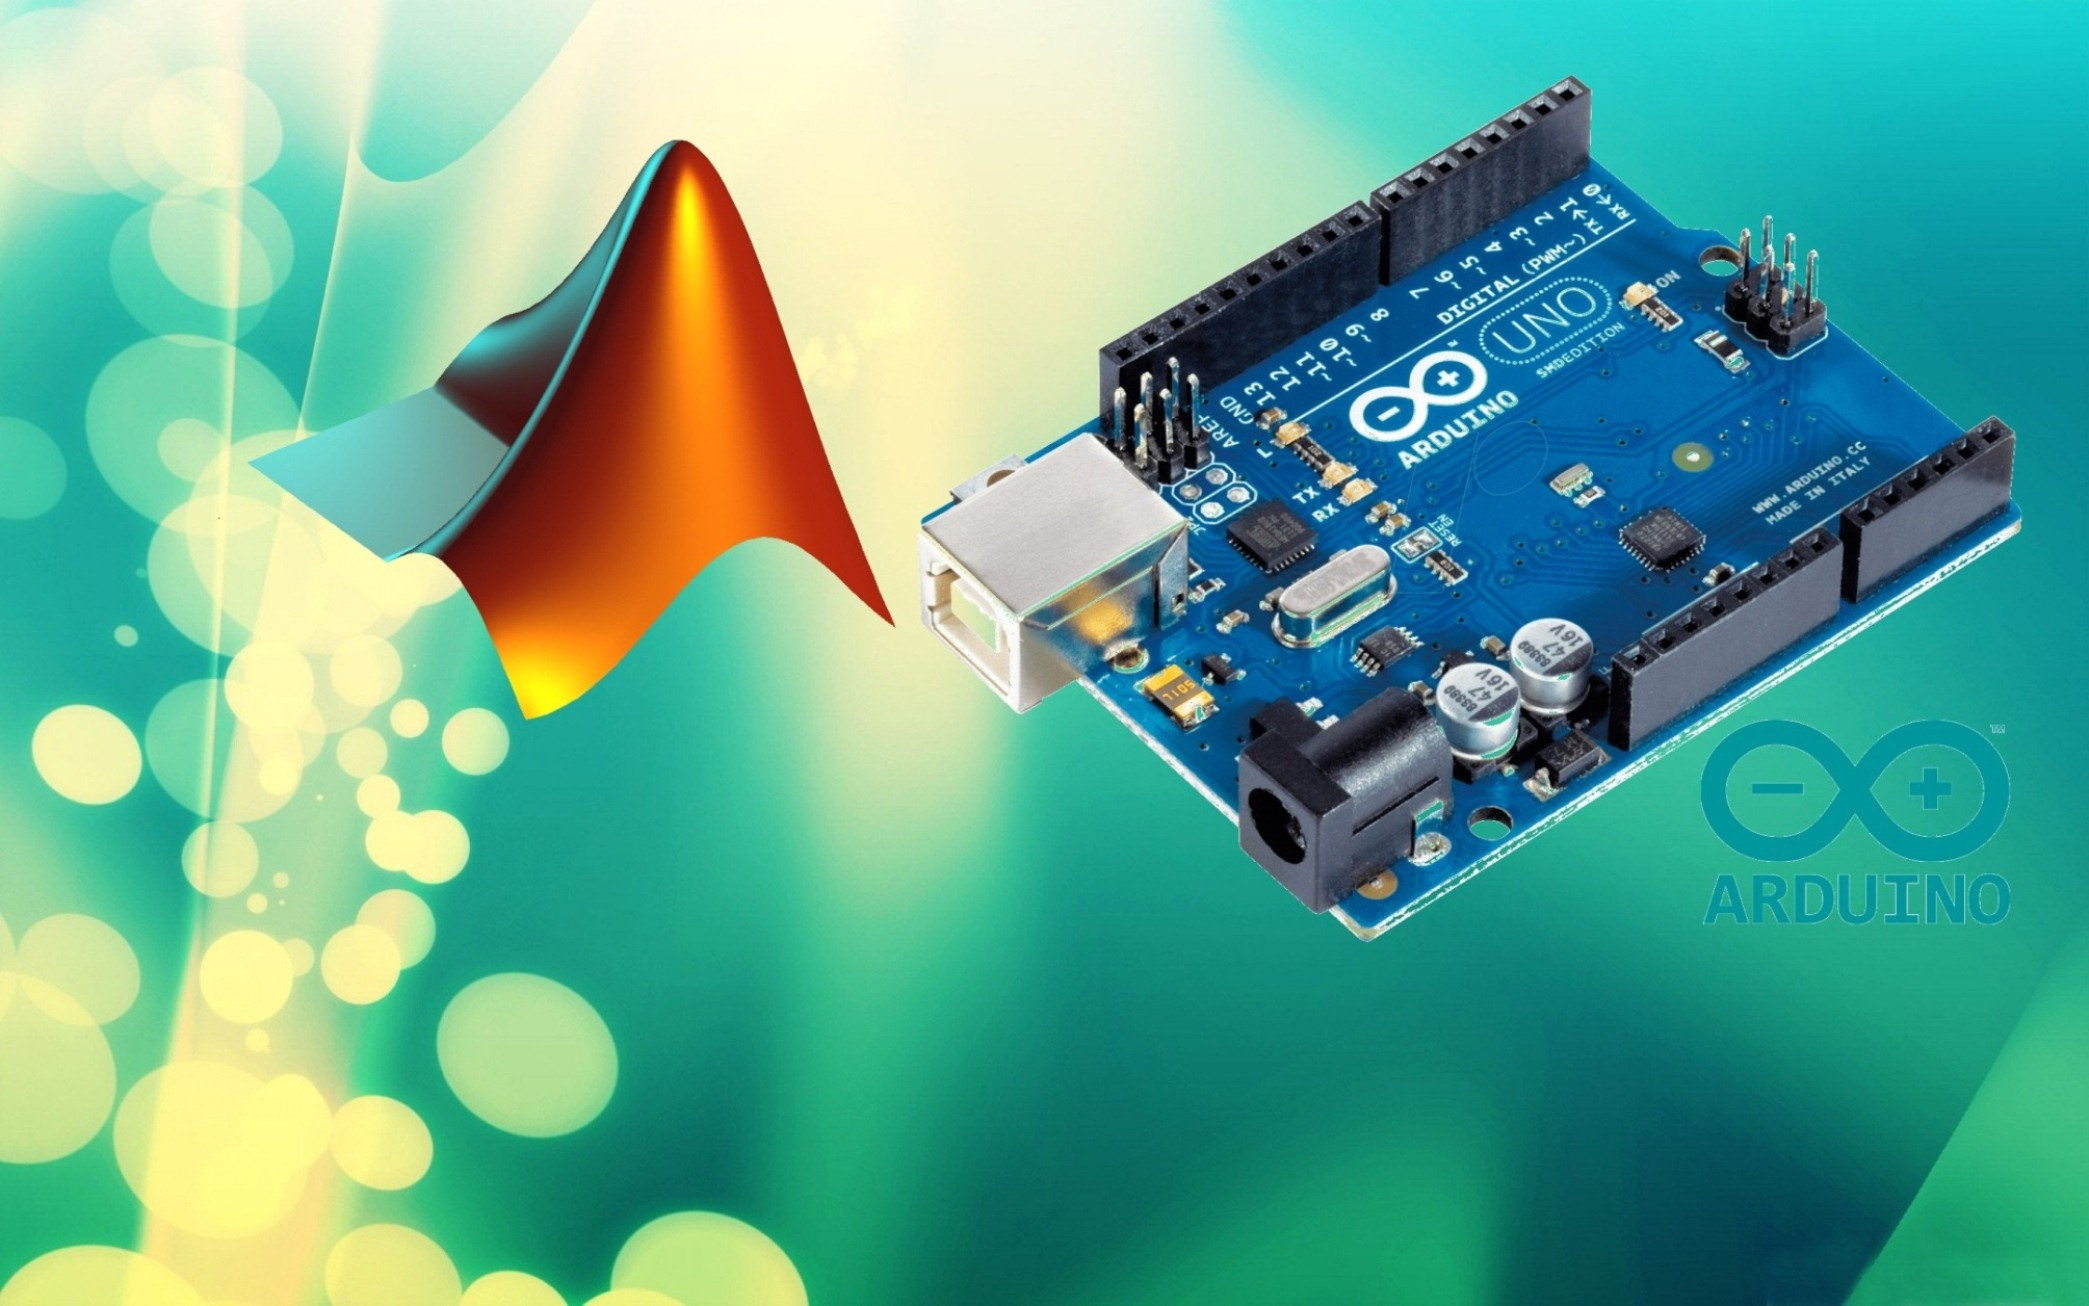 Arduino Uno and MathWorks Learn to Program Pack